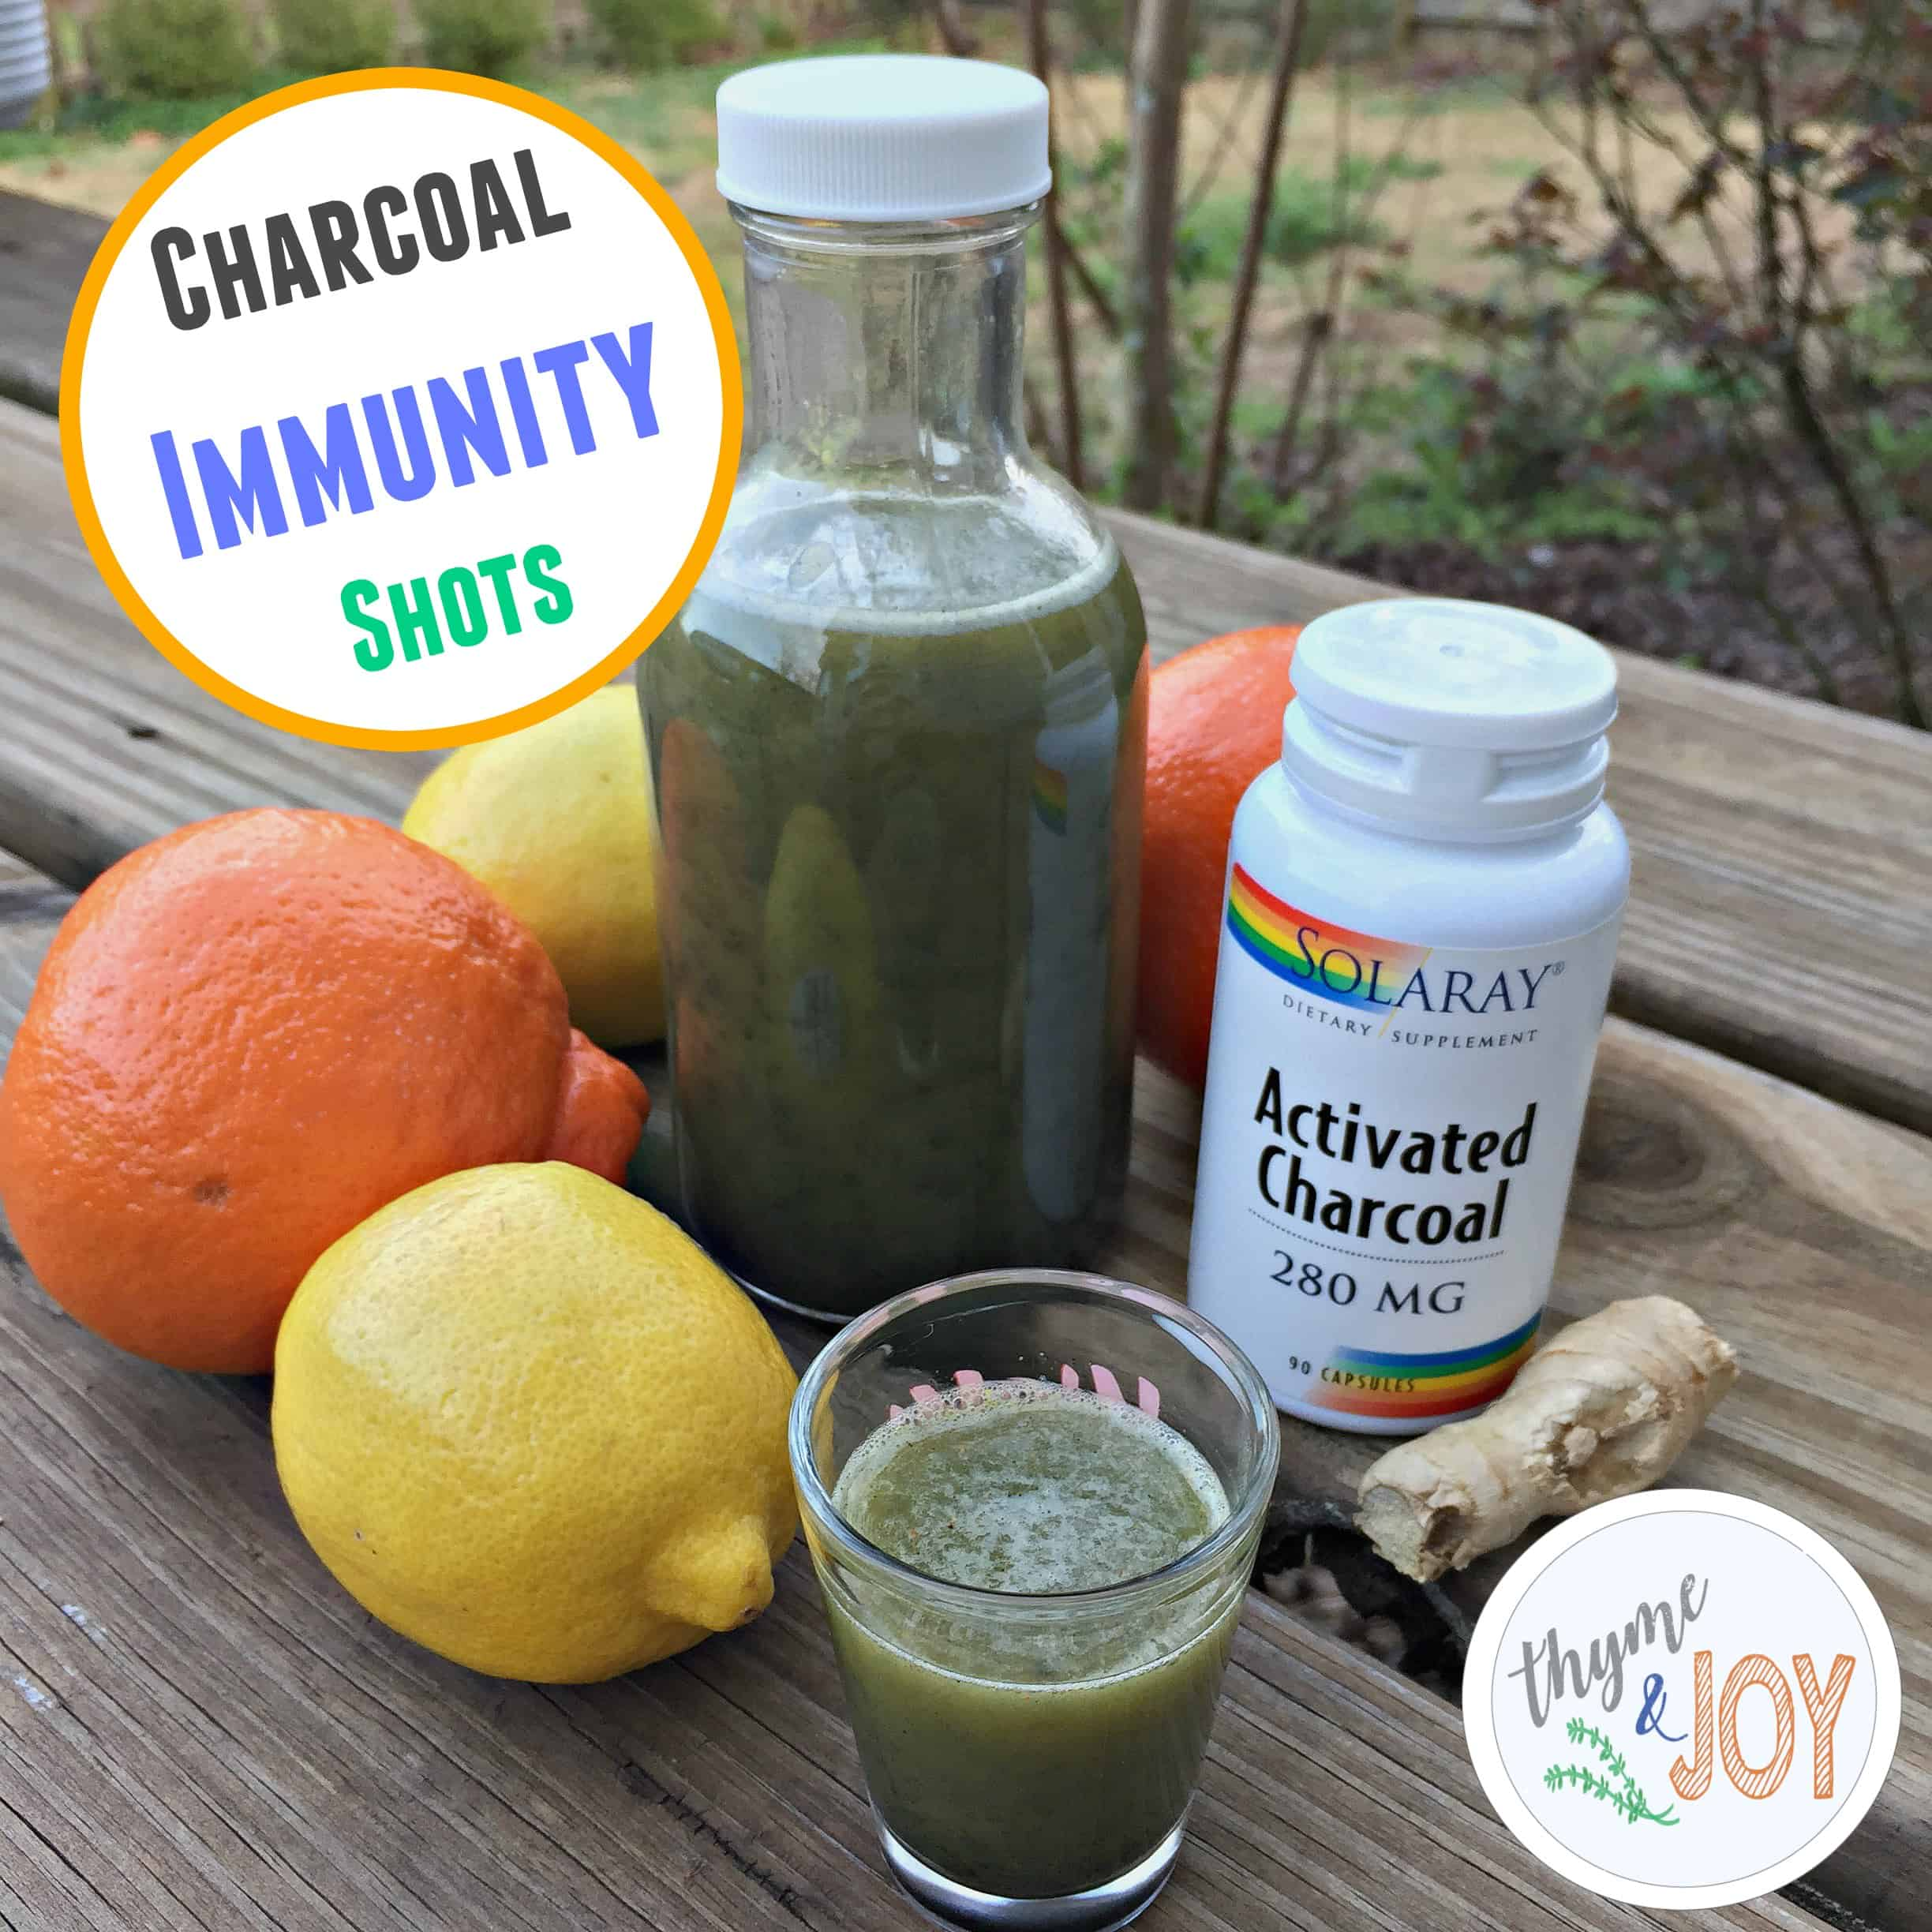 These charcoal immunity shots are simple blend of ginger, lemon, orange and charcoal which helps digestion, nausea, and boosts your immune system.Thyme + JOY